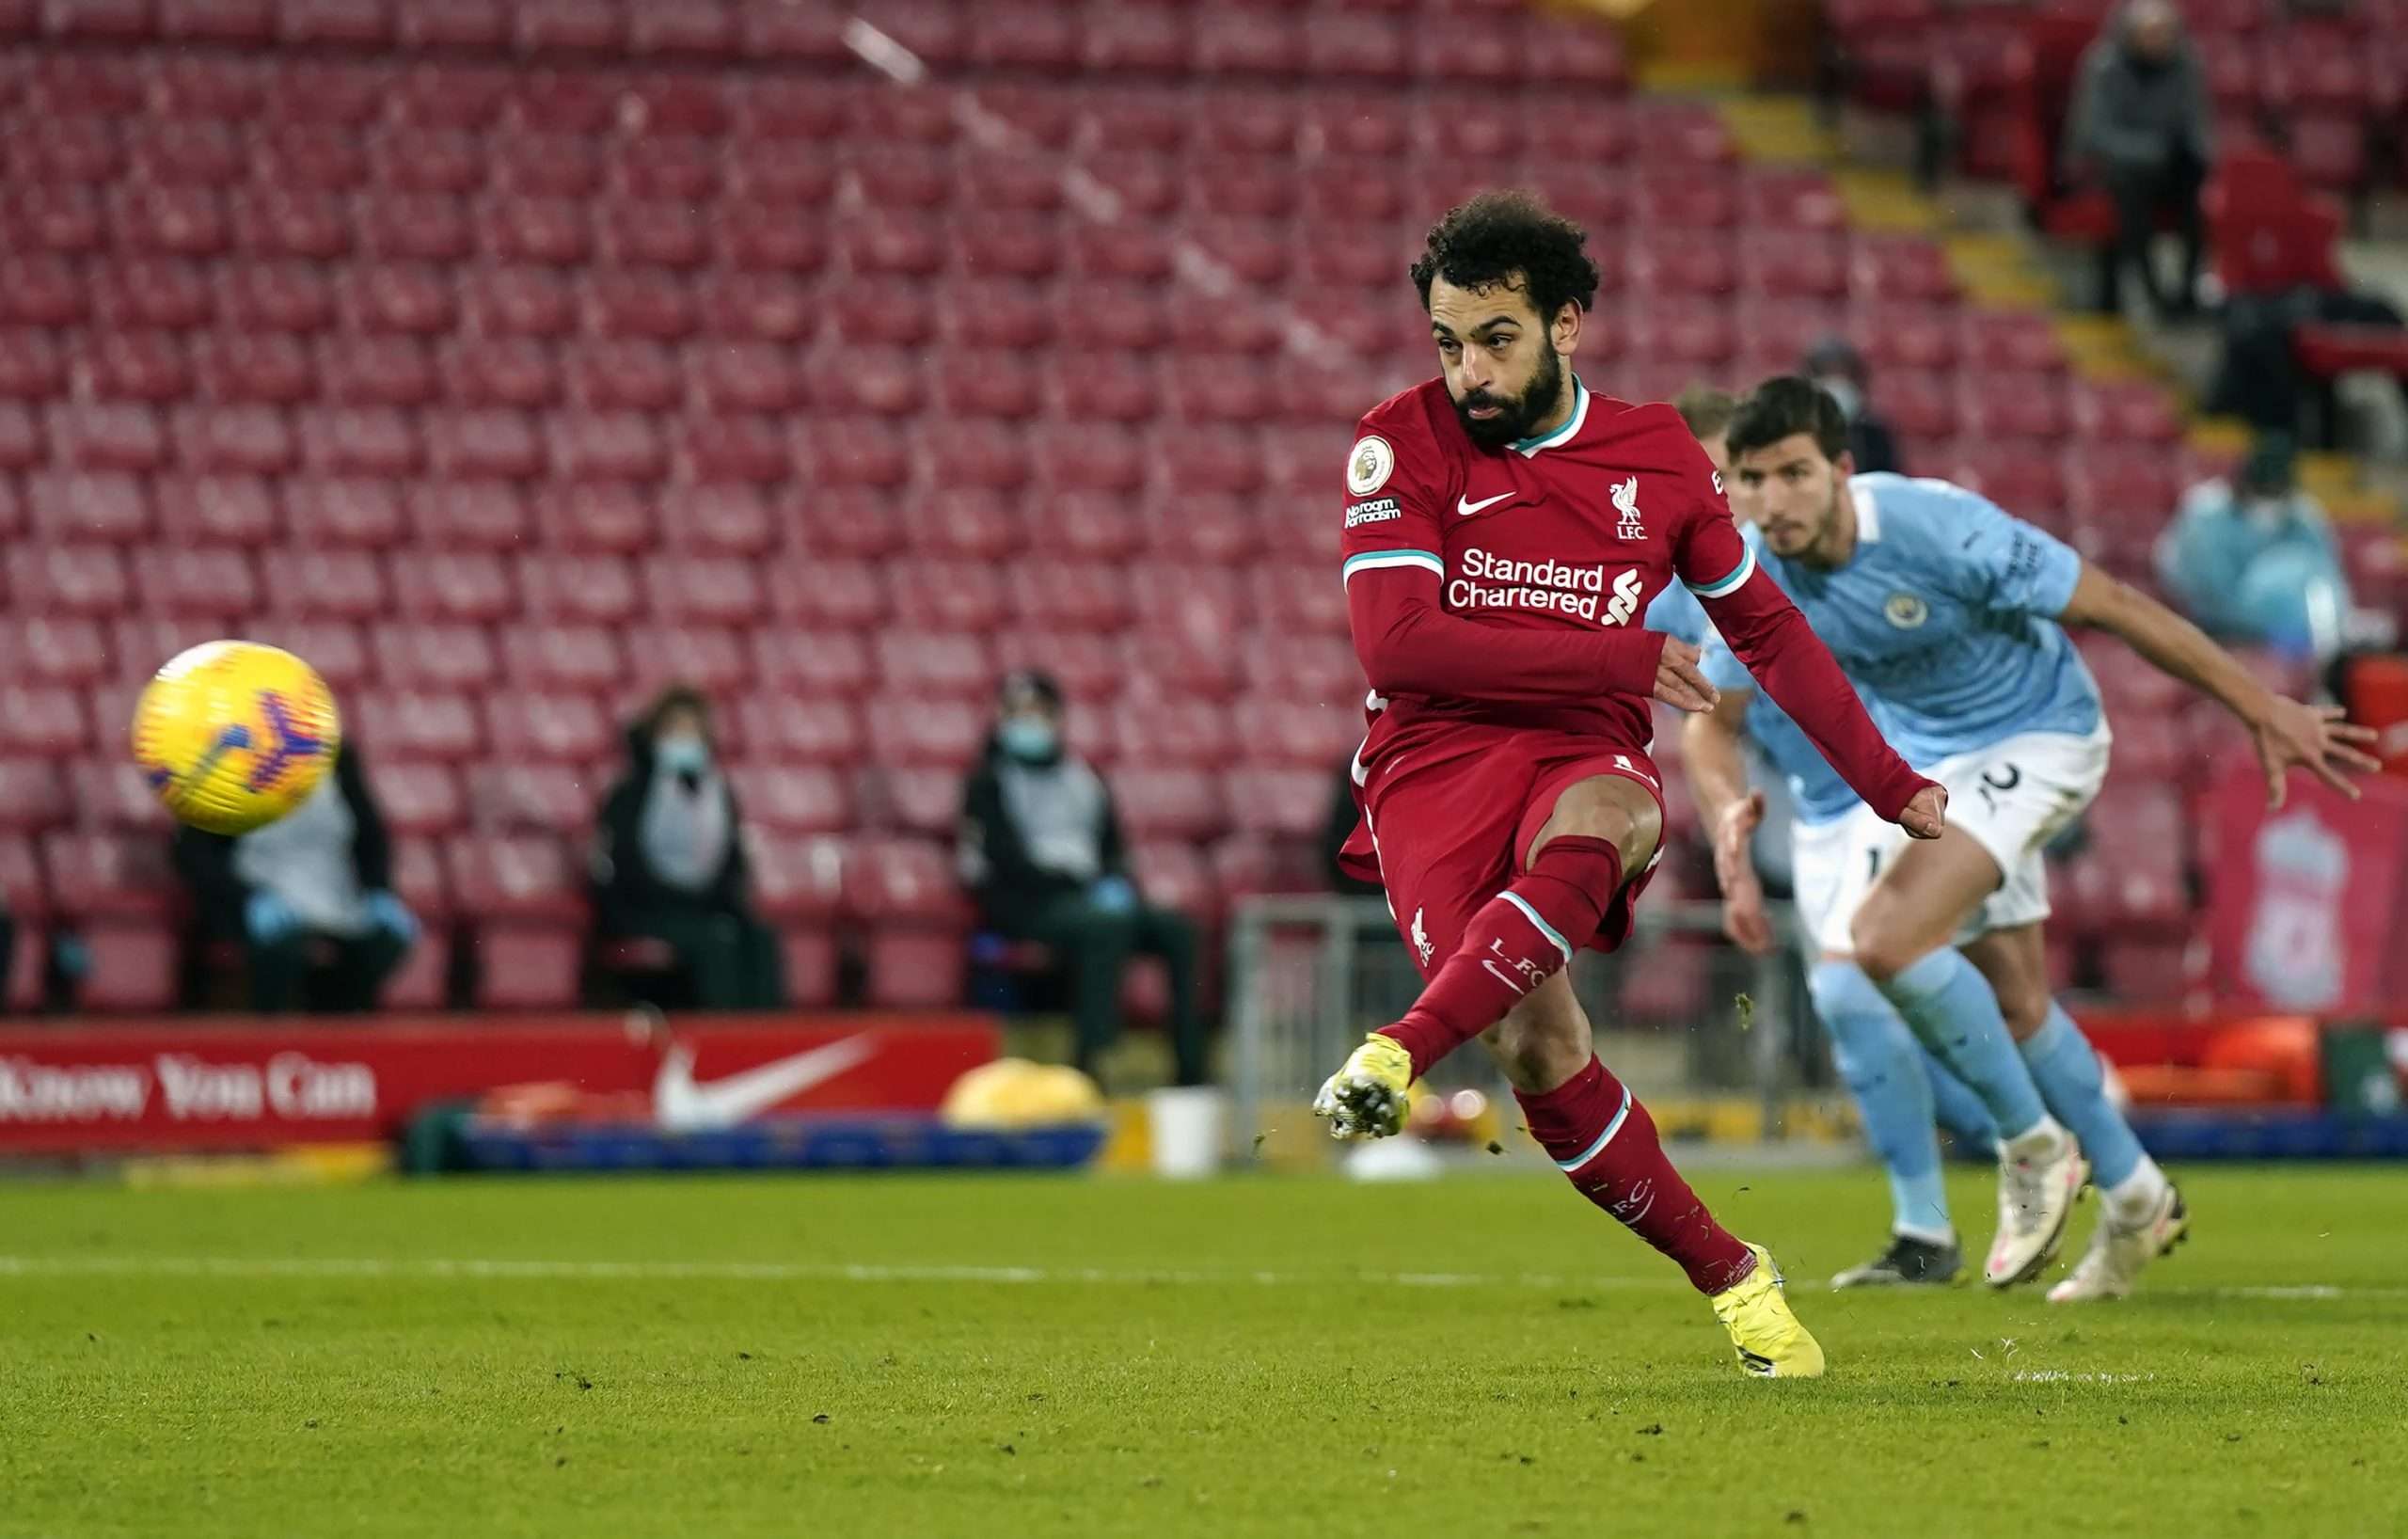 2/7/2021 - Liverpool's Mohamed Salah scores their side's first goal of the game from a penalty during the Premier League match at Anfield, Liverpool. Picture date: Sunday February 7, 2021.